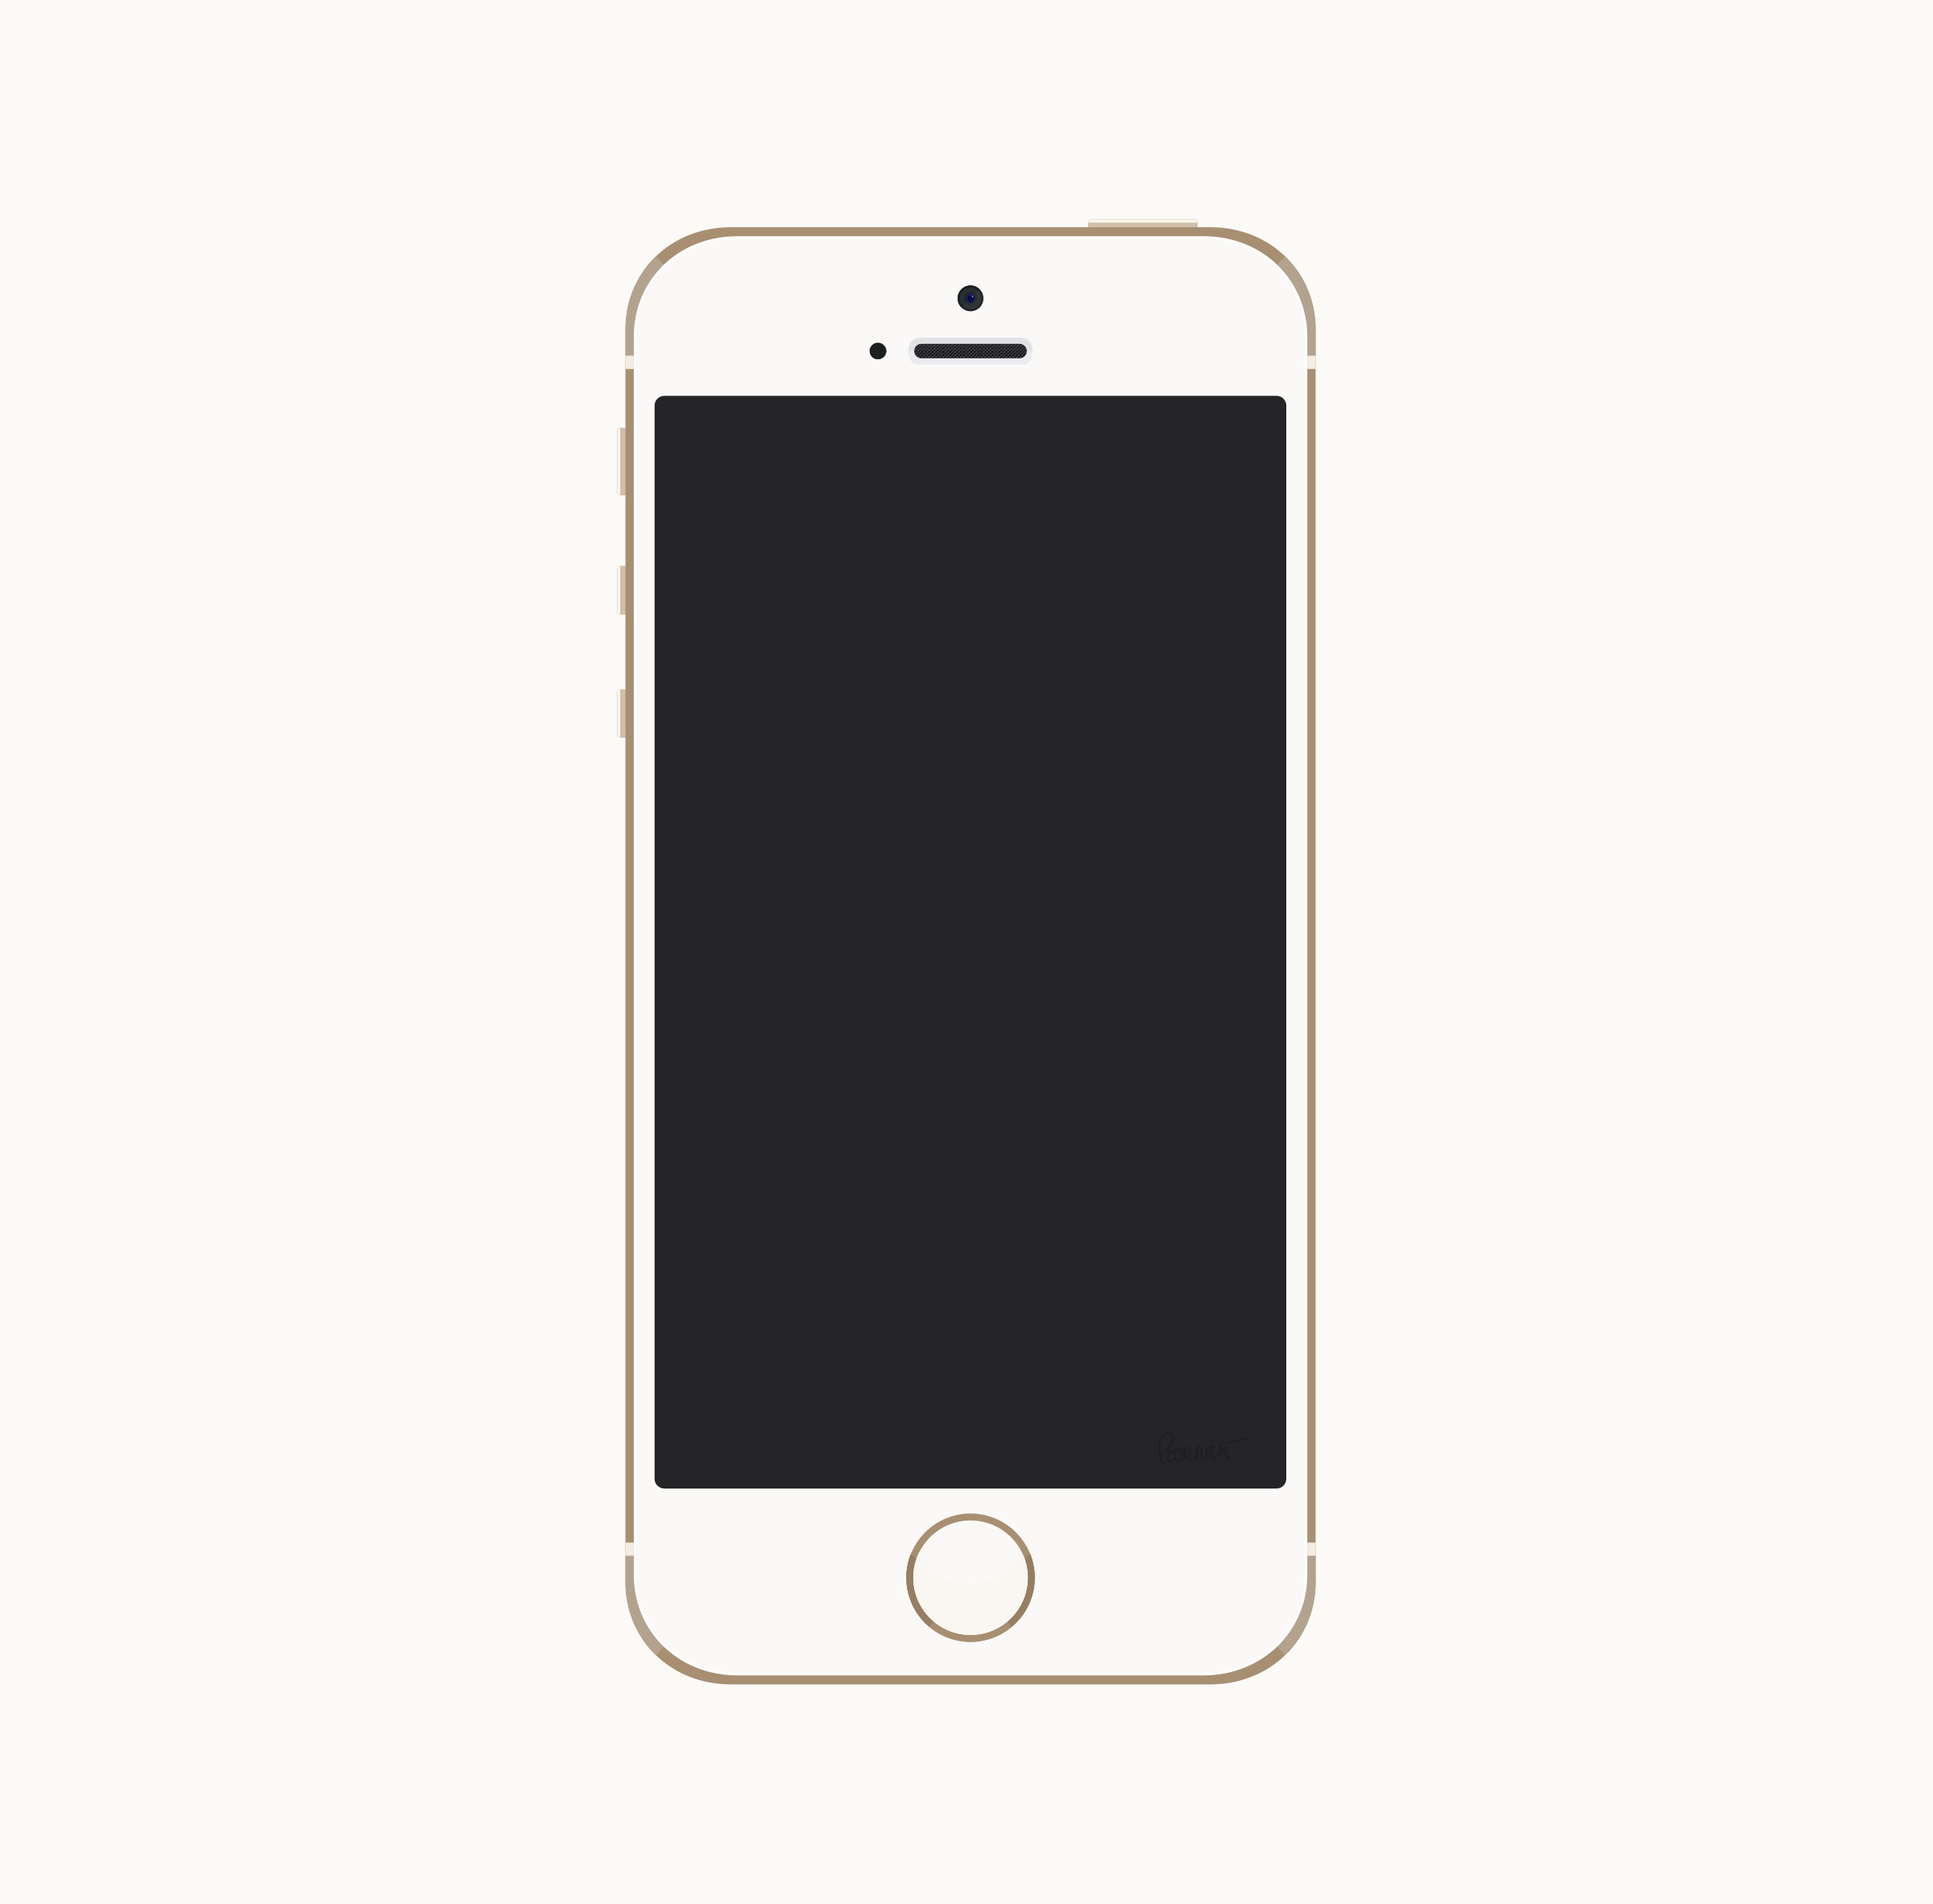 Iphone cell phone clipartuse. Cells clipart phoneclip art picture freeuse